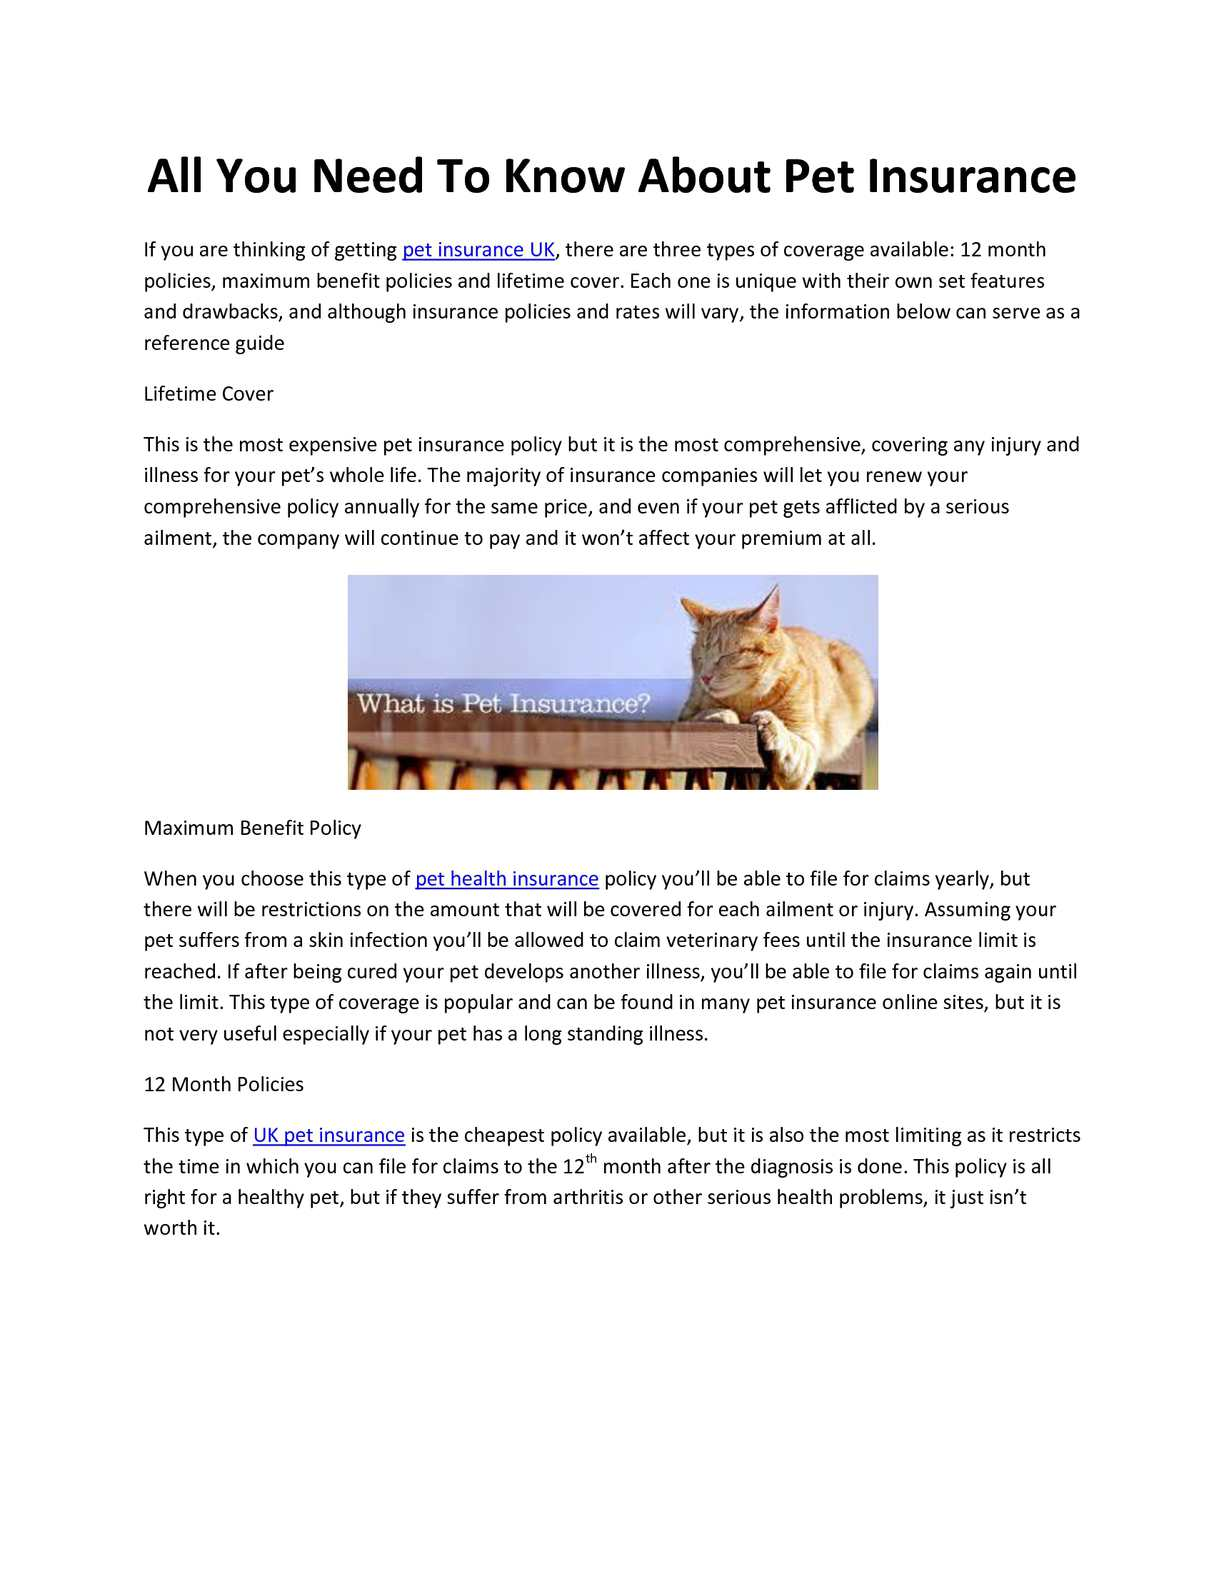 Pet Insurance Companies >> Calameo All You Need To Know About Pet Insurance